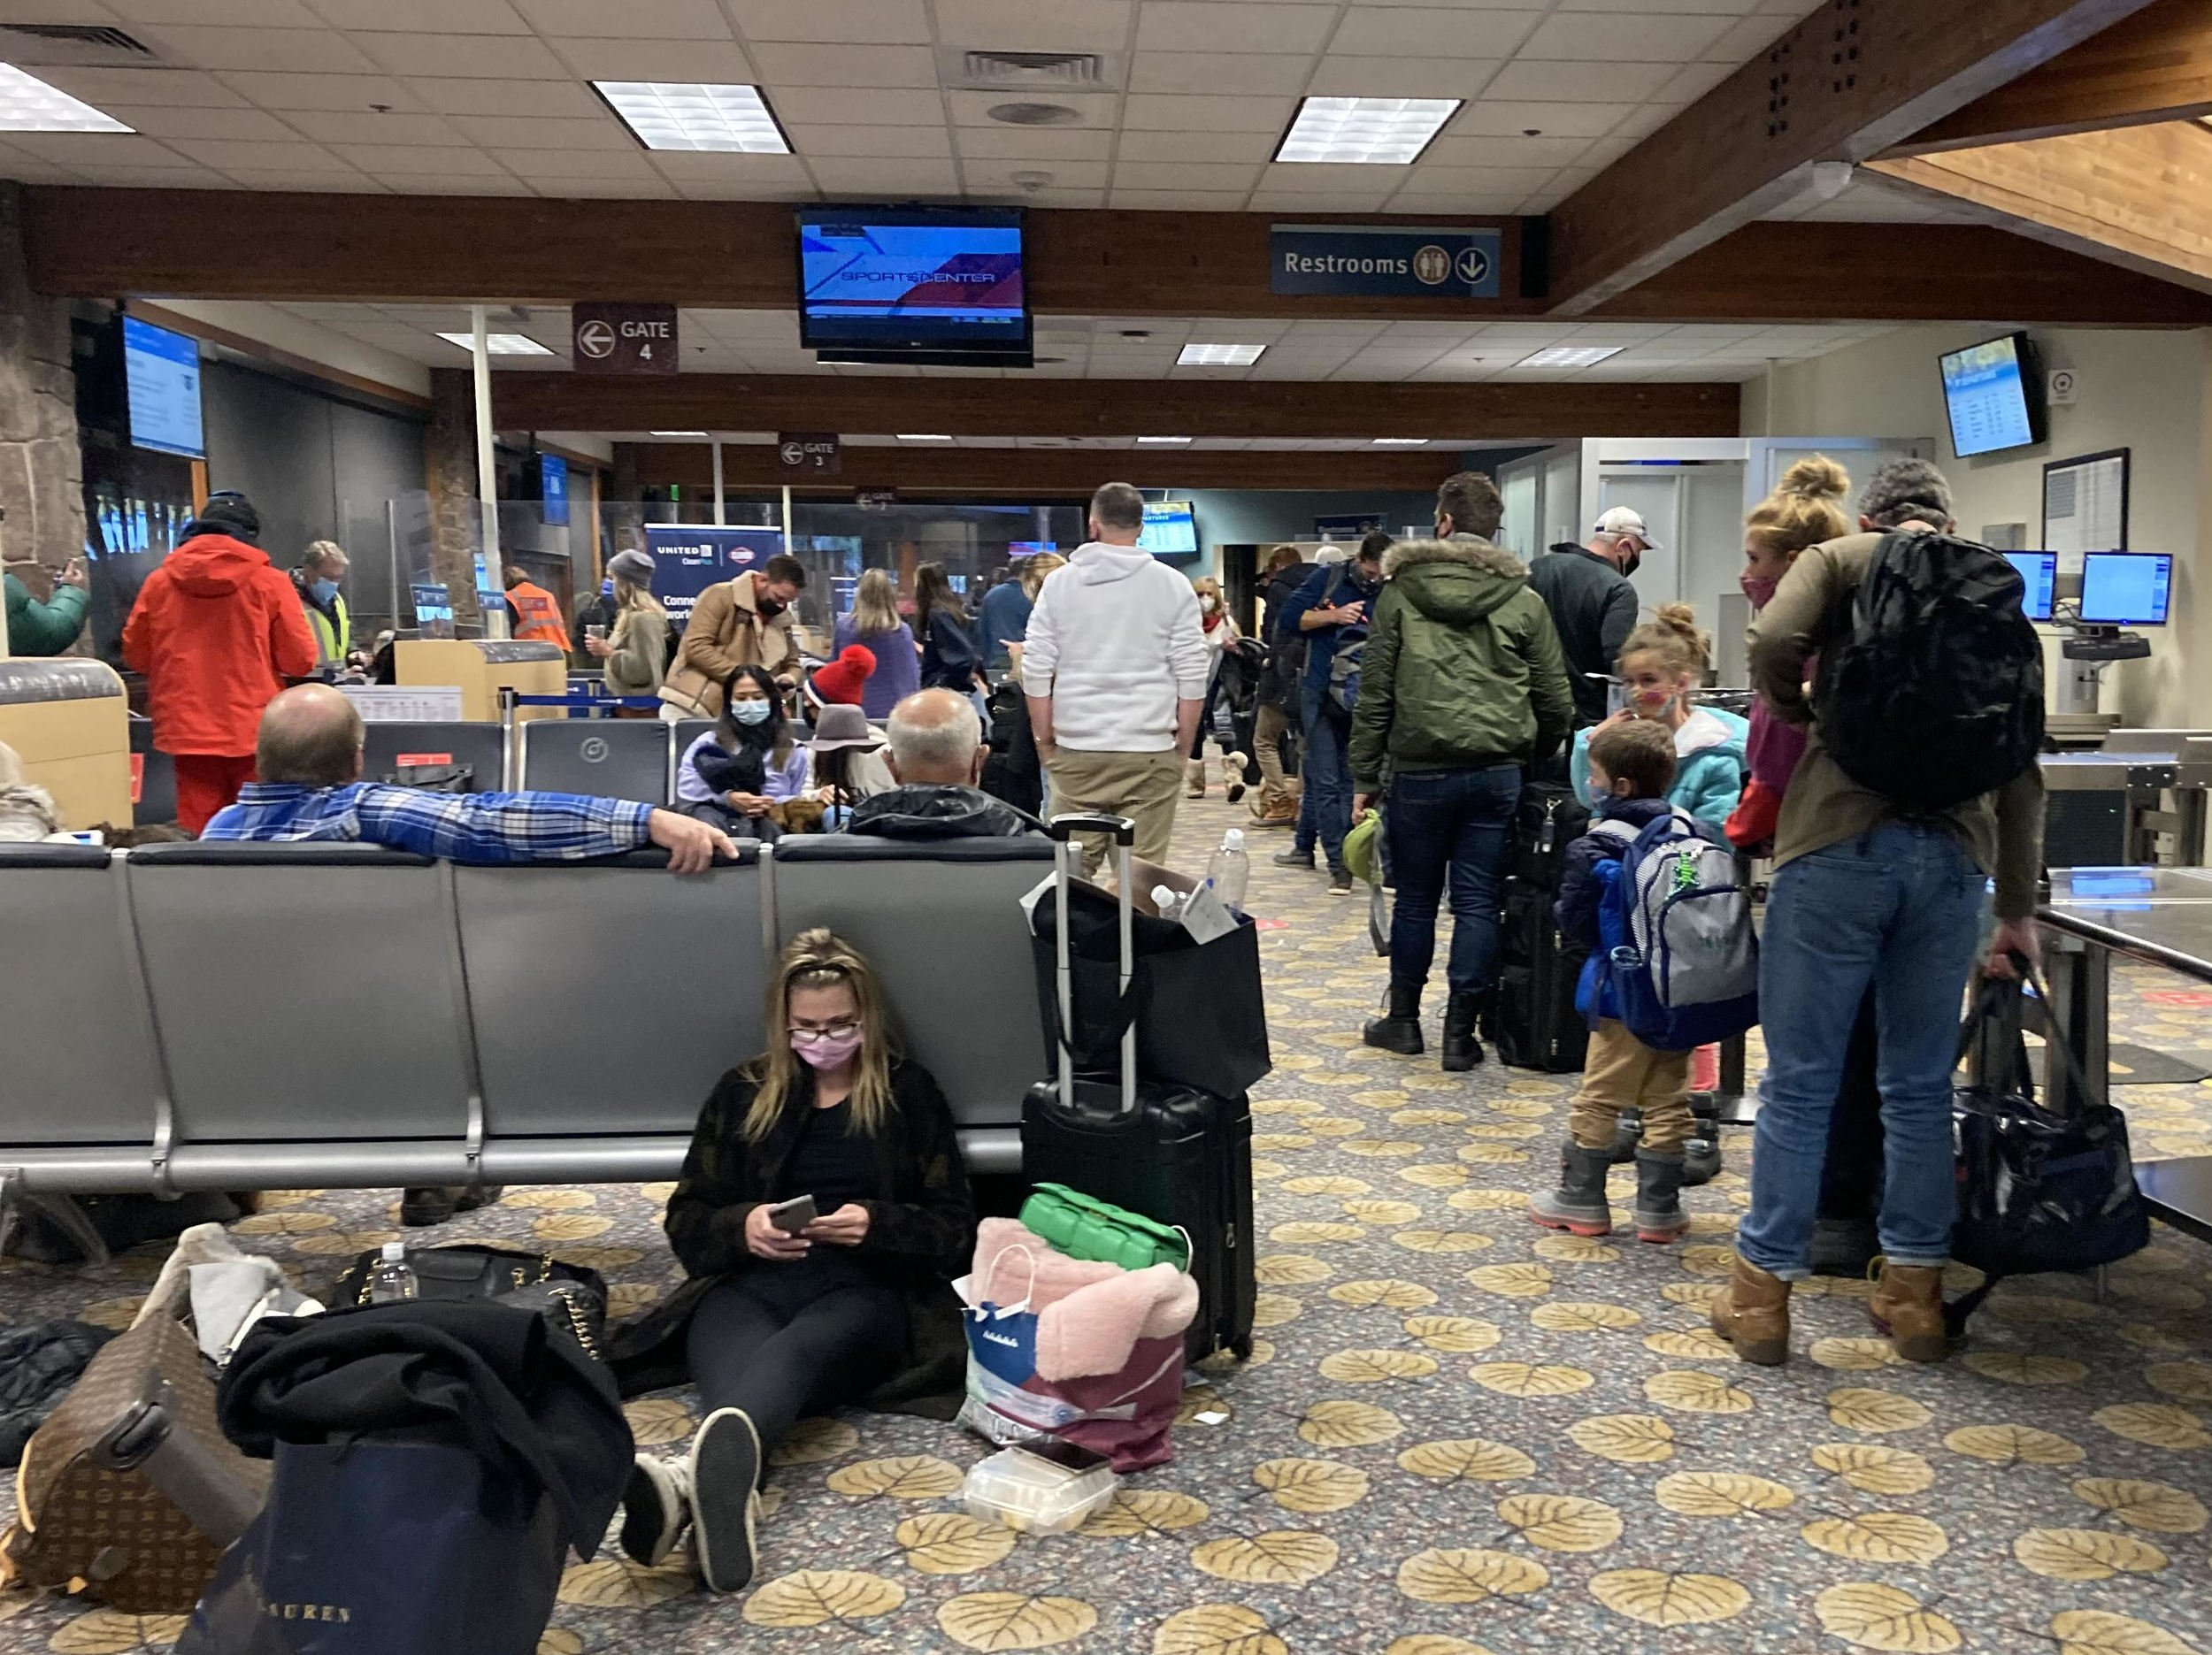 People continue to travel over the holidays through the Aspen Airport, though they had ahard time adhering to the intermittent advisory to keep their distance from one another. Photo by James Steindler